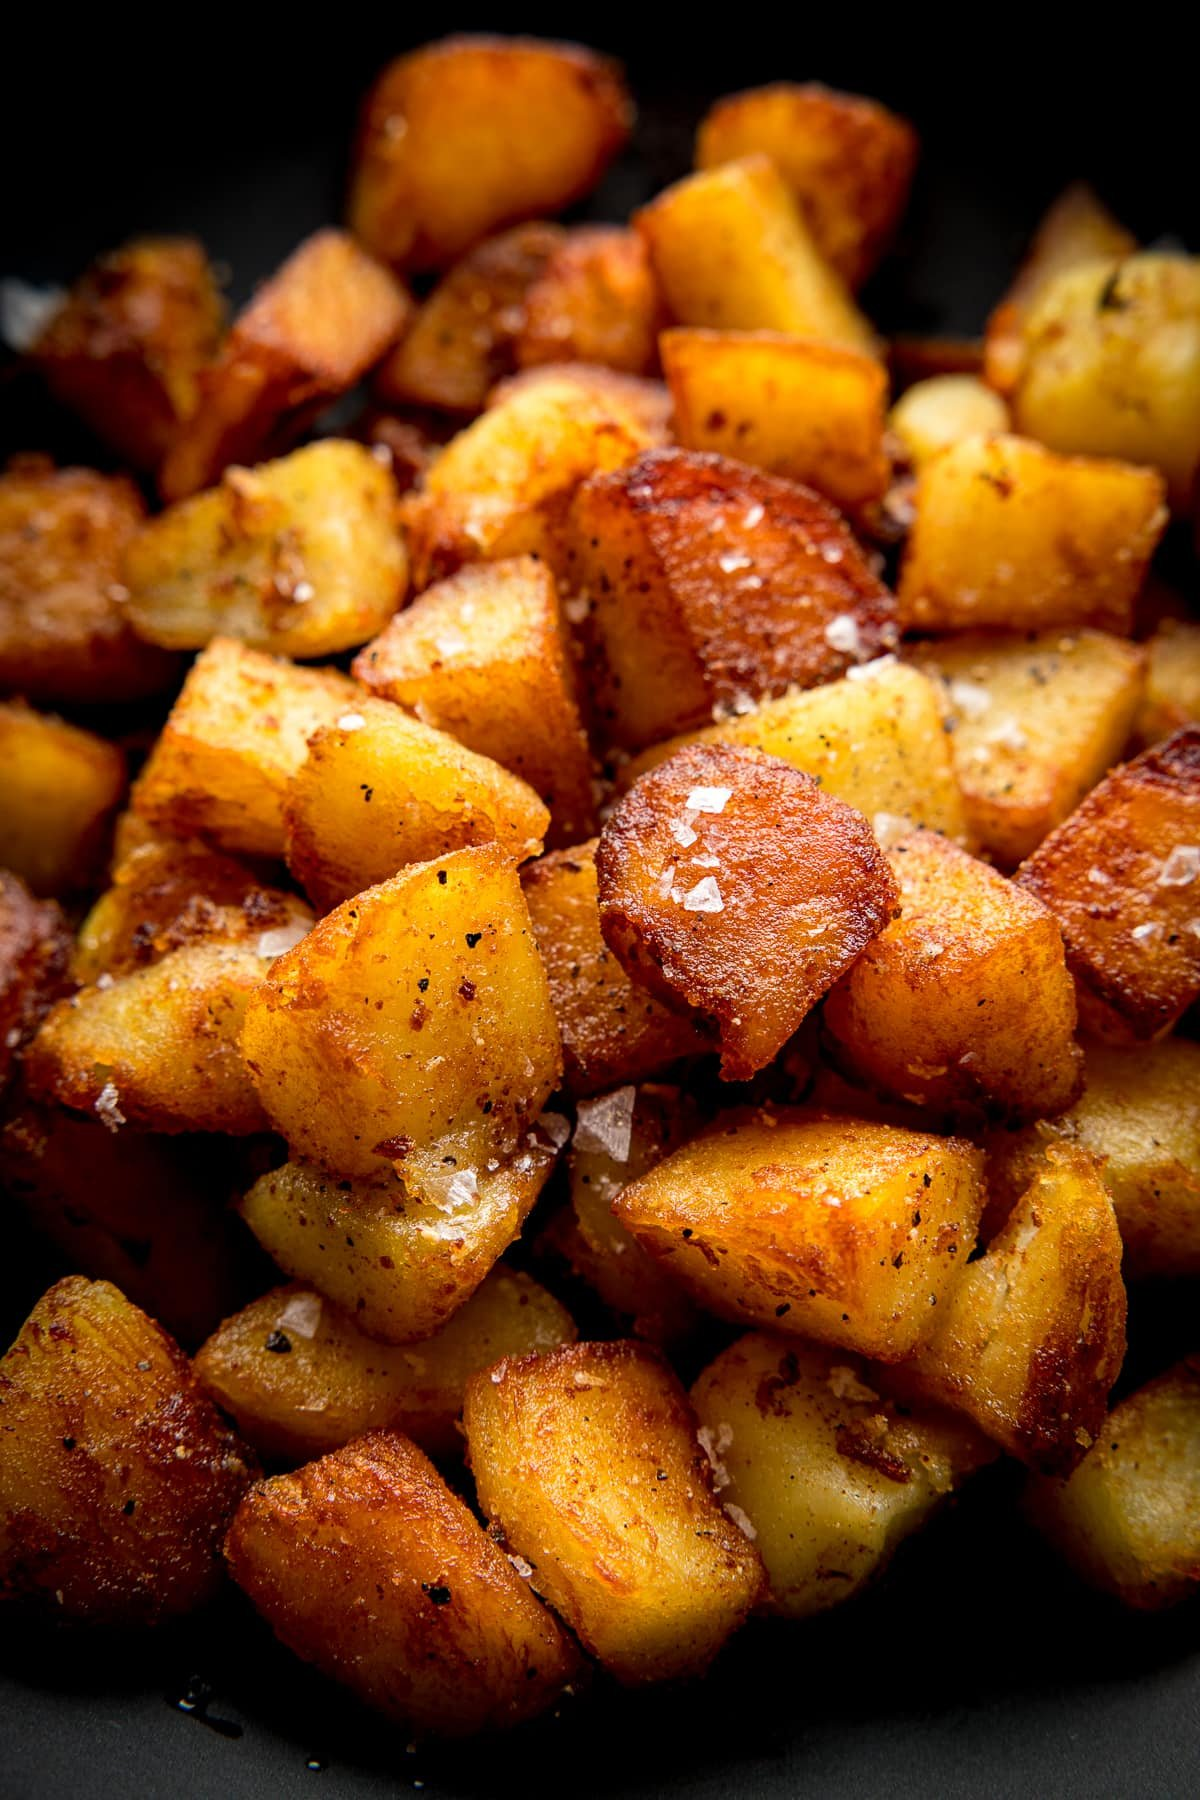 Close up image of a pile of crispy saute potatoes in a dark bowl topped with a sprinkling of salt